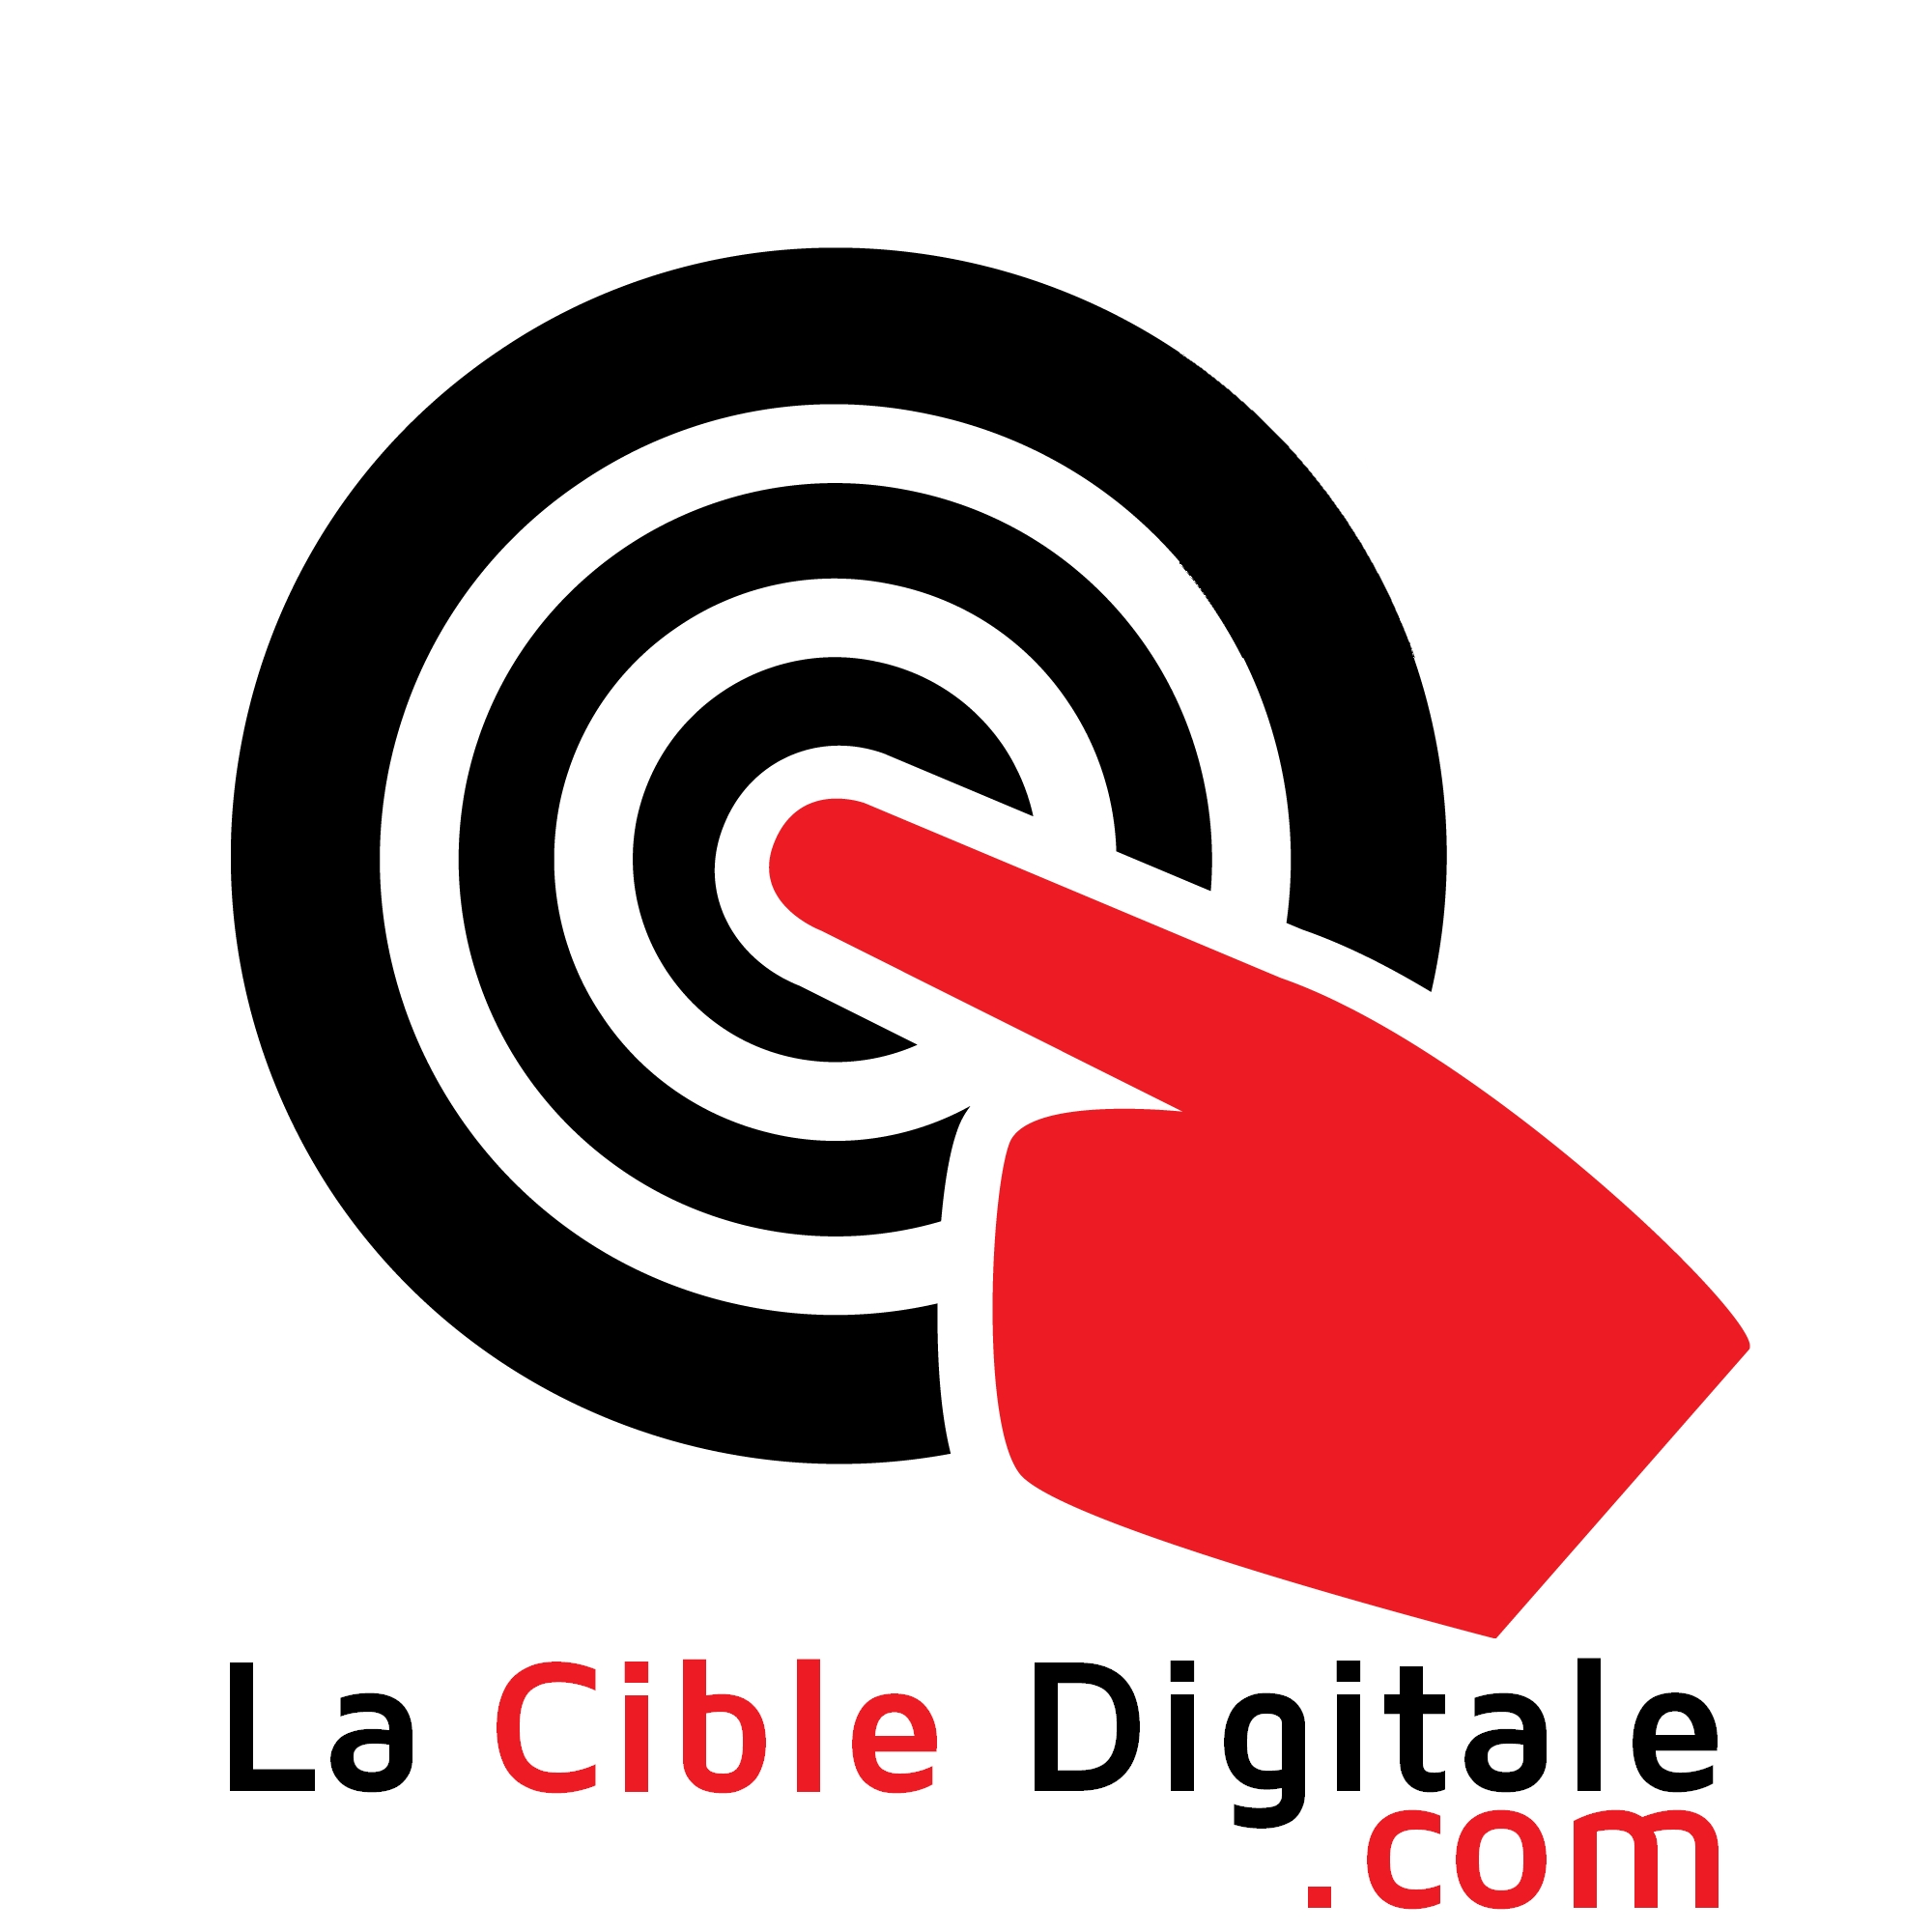 La cible digitale